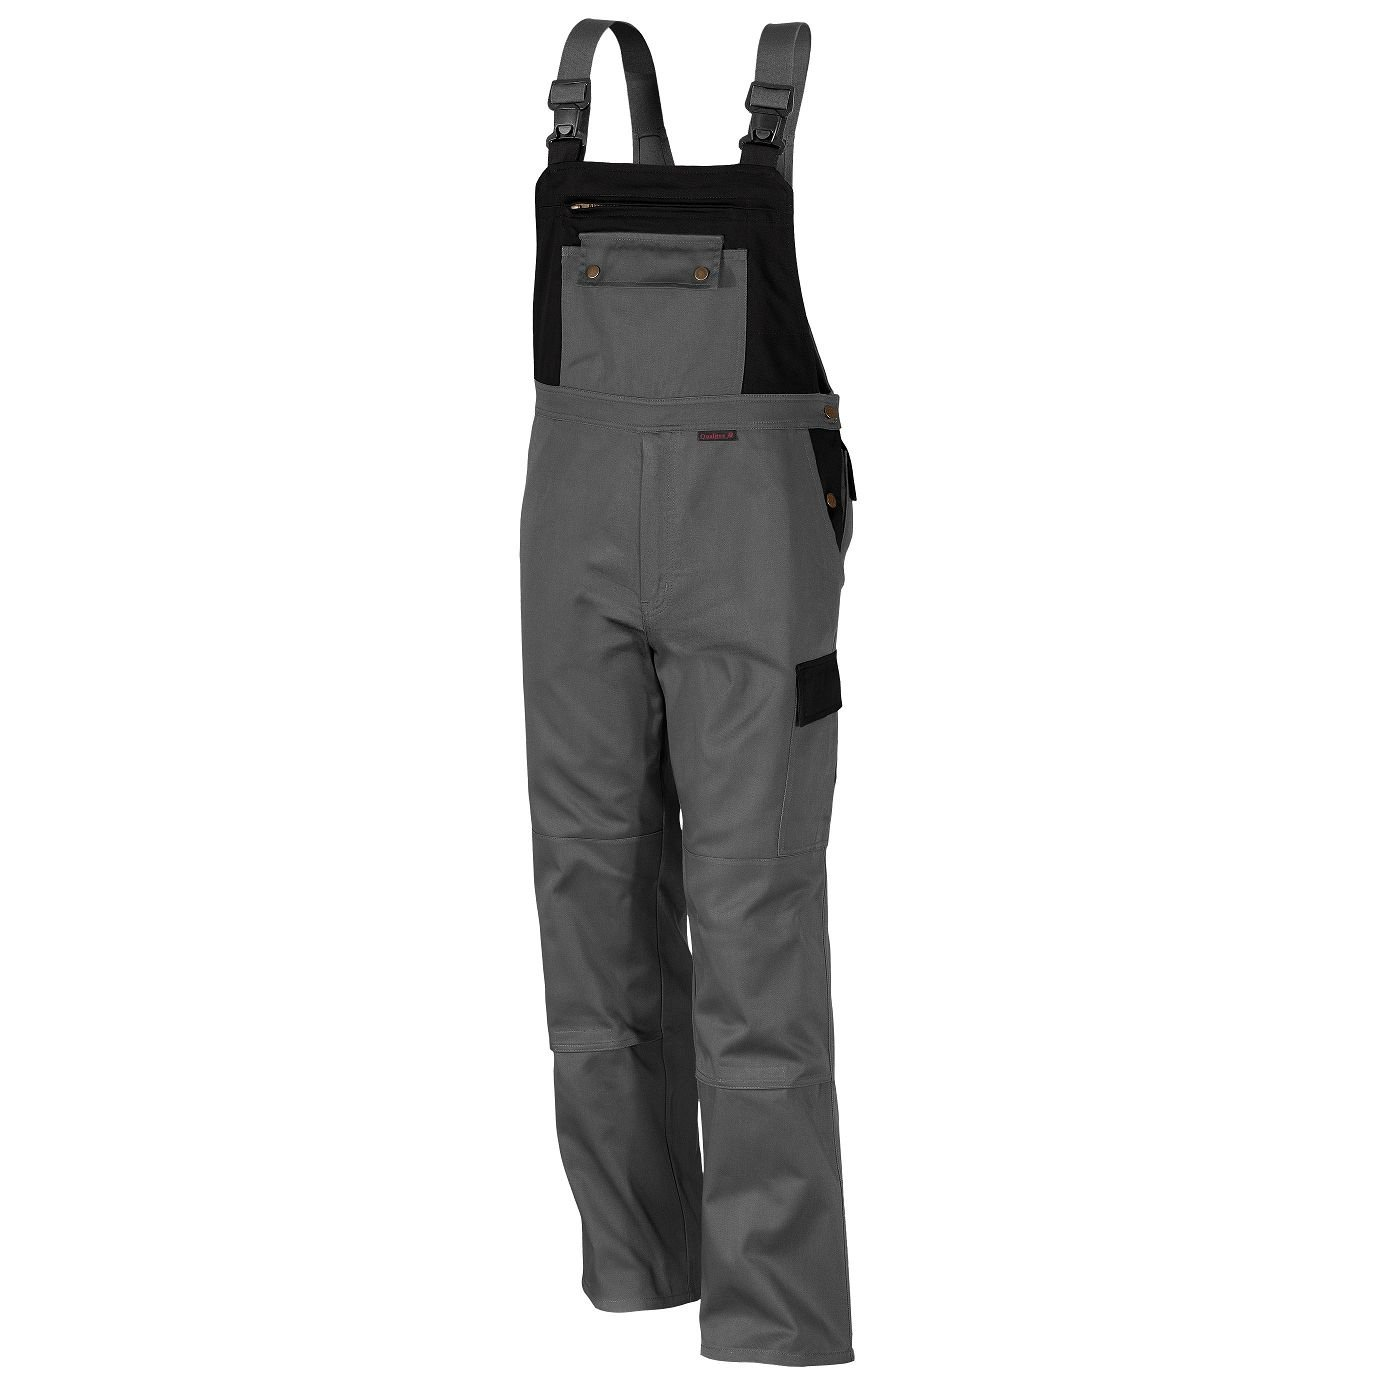 Qualitex 3105/5-8 25 Image Dungarees, Blended Fabric, 65% Cotton, 35% Polyester, Grey-Black